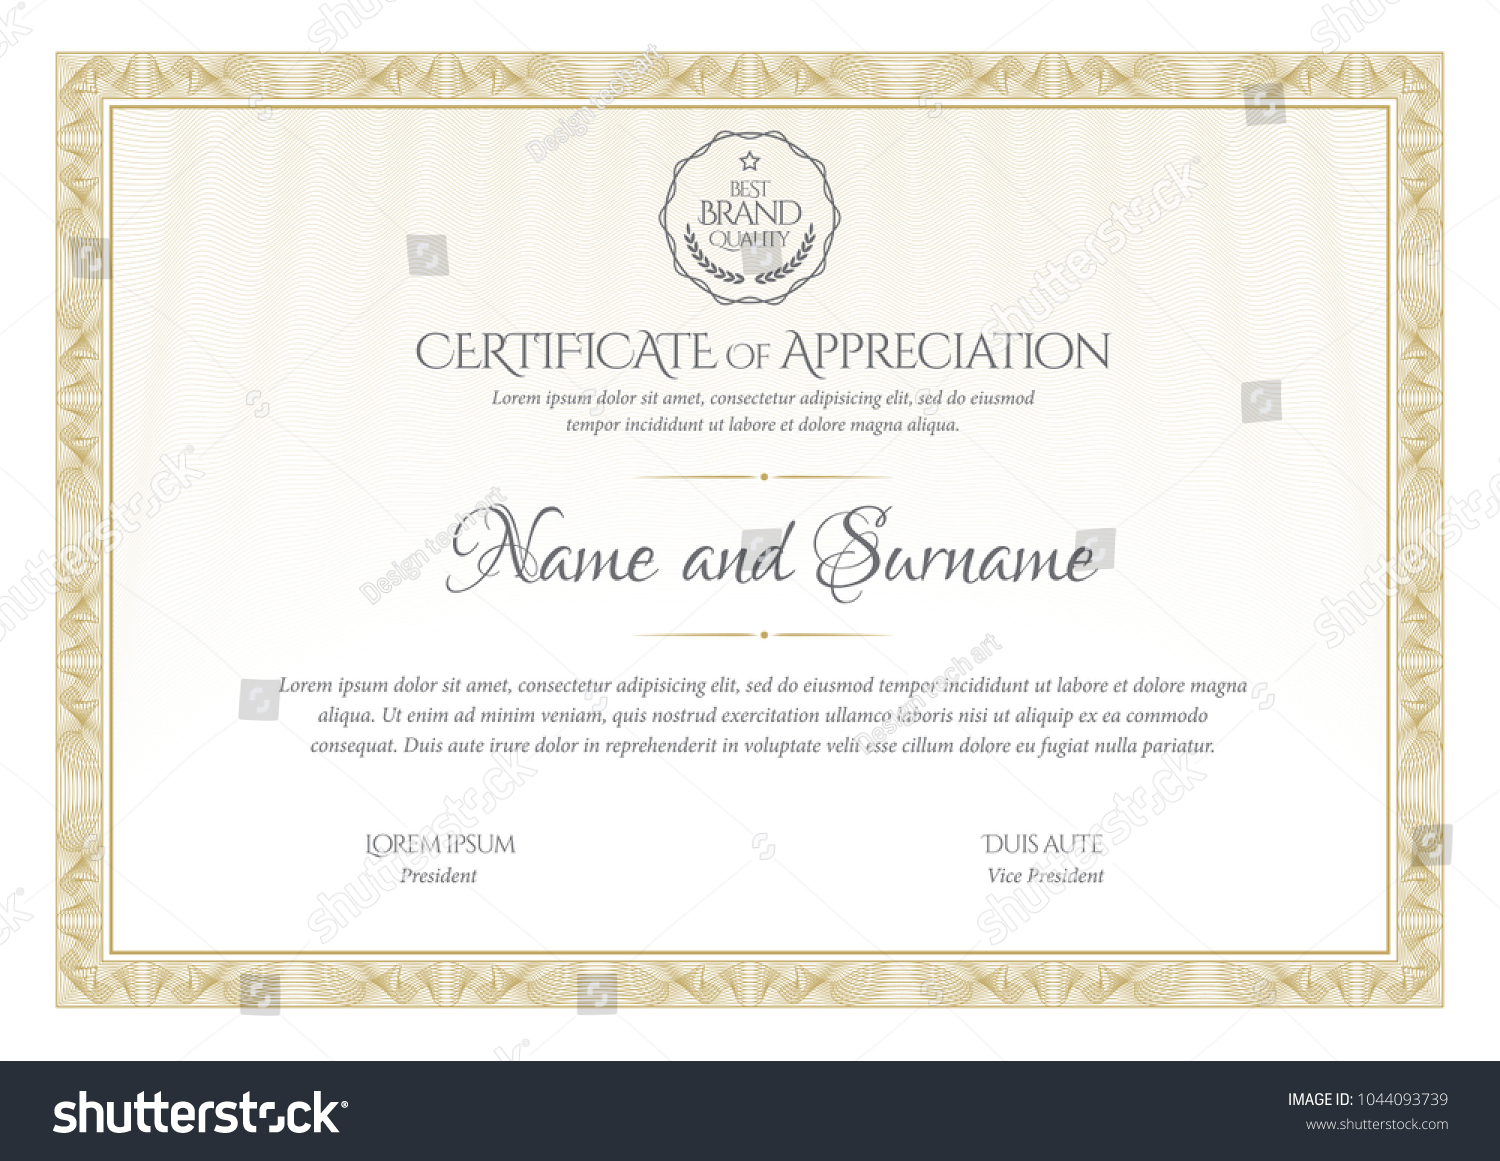 Certificate template diploma currency border award certificate template diploma currency border award background gift voucher vector illustration yelopaper Images